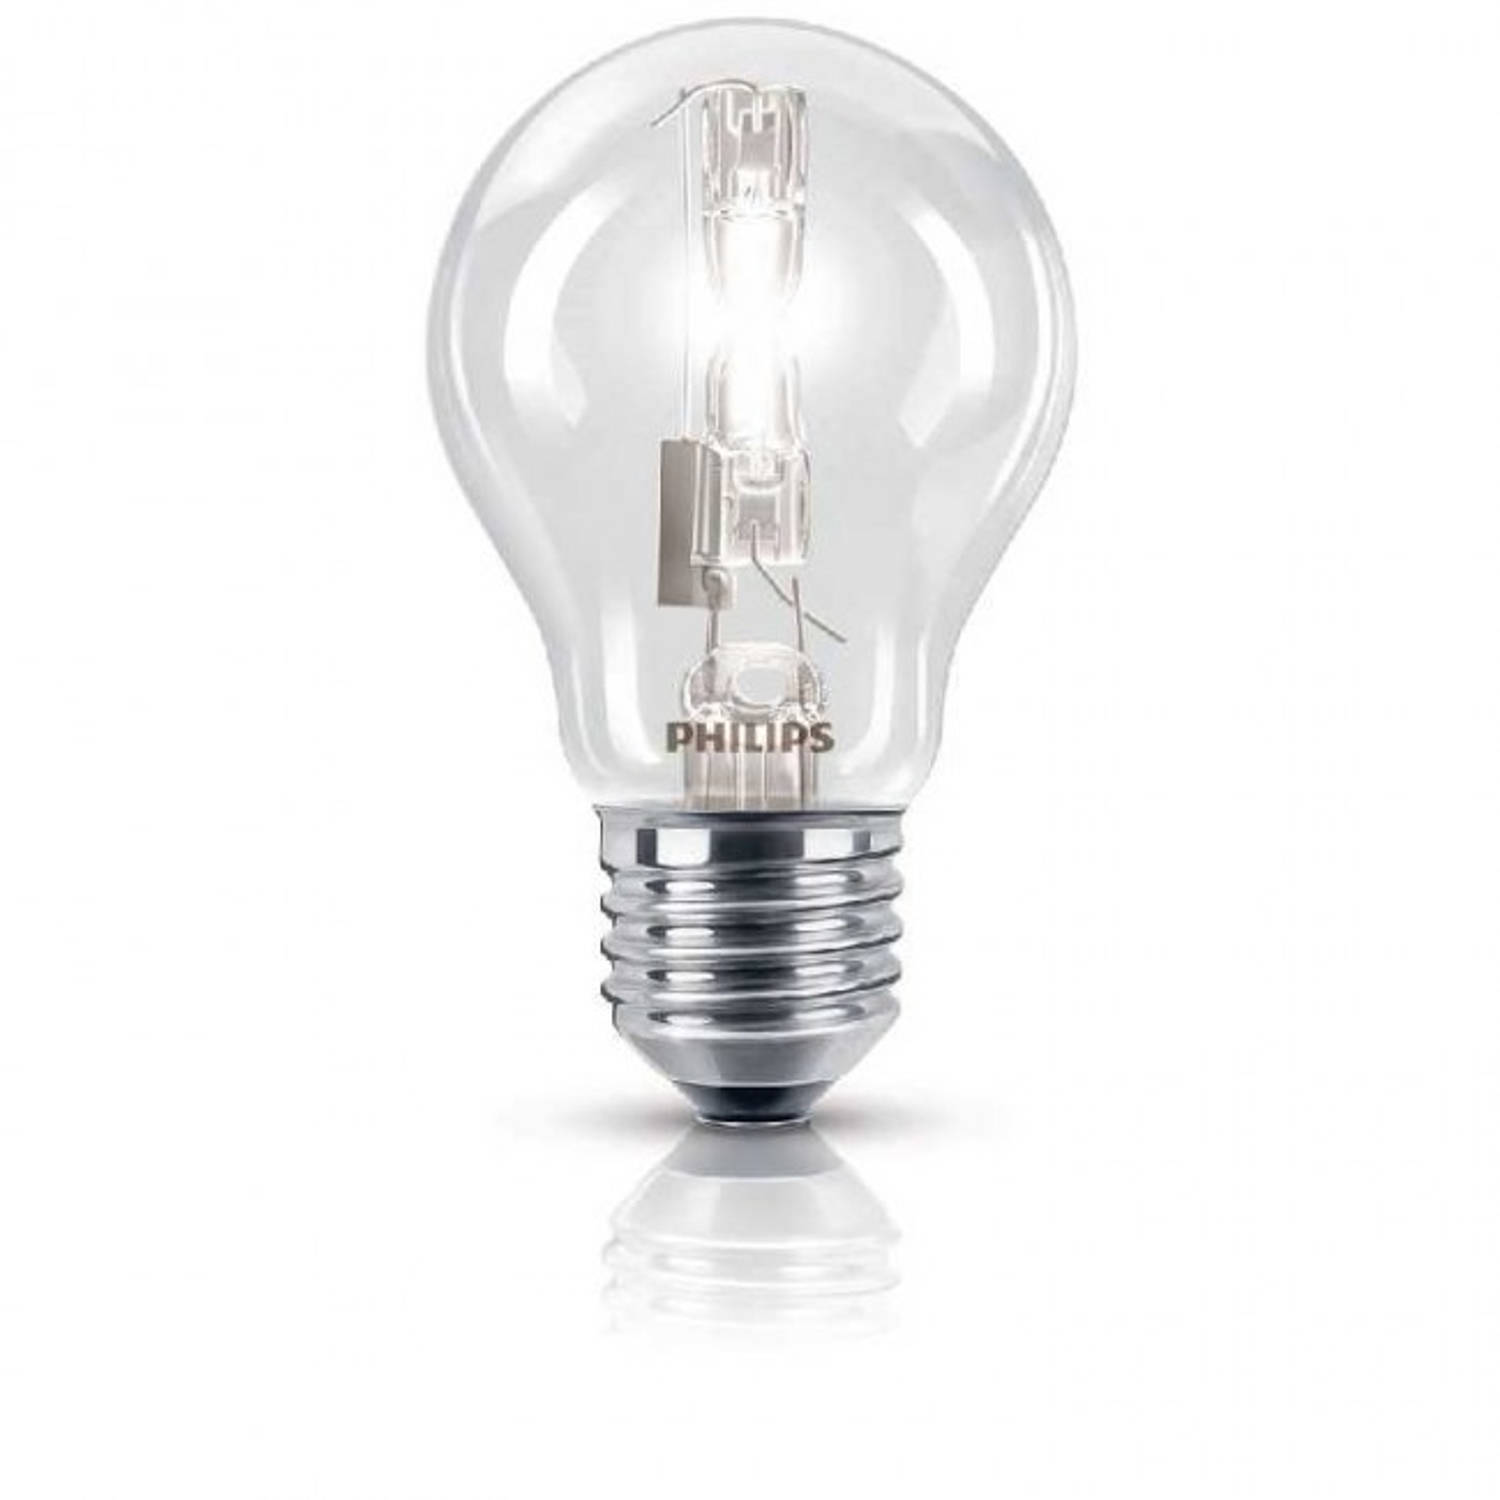 Philips EcoClassic halogeenlamp A55 105 W E27 warm wit